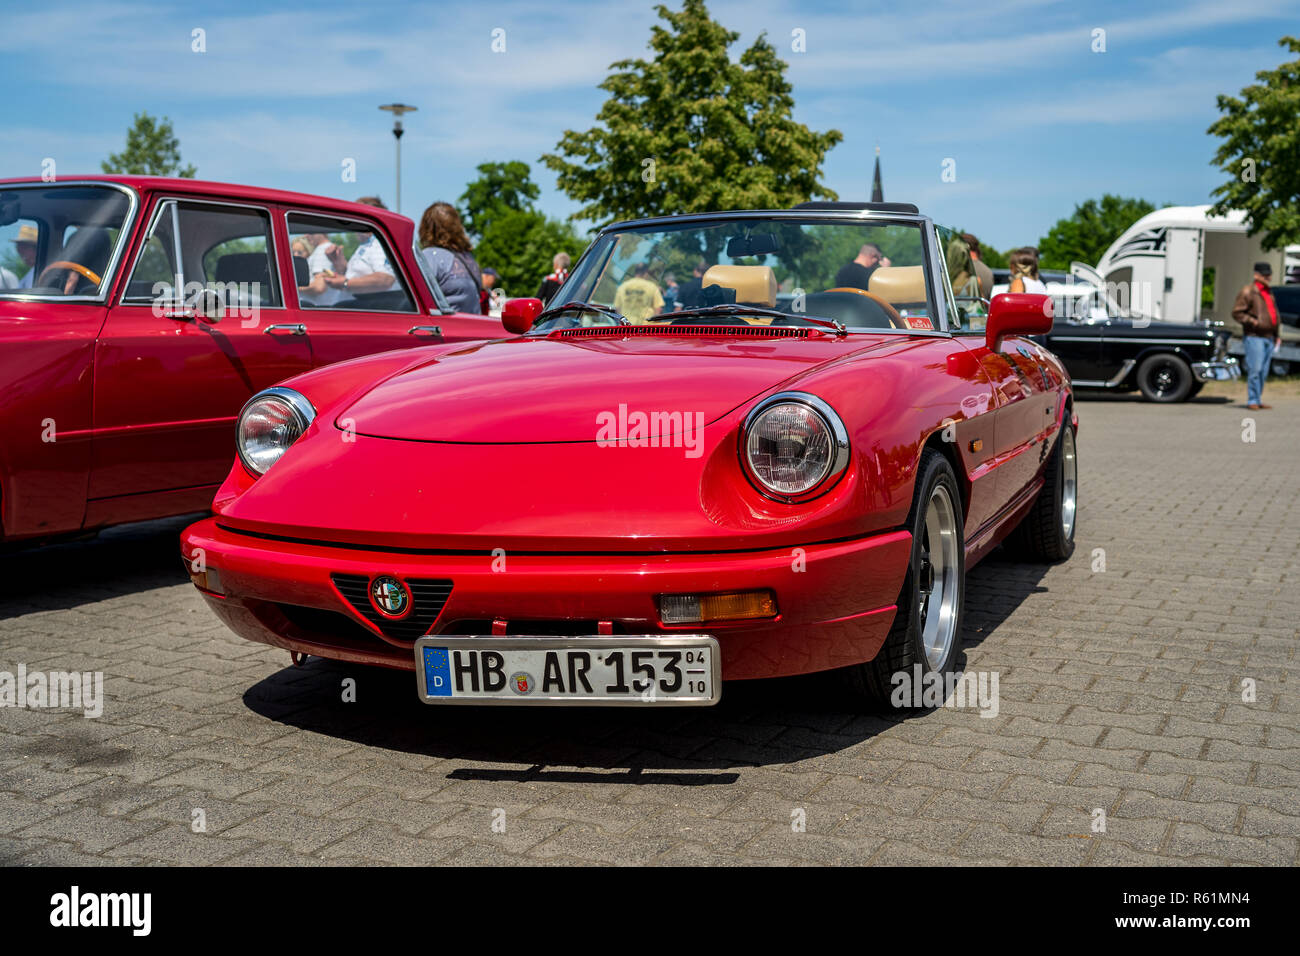 oldtimer alfa romeo spider stock photos oldtimer alfa. Black Bedroom Furniture Sets. Home Design Ideas